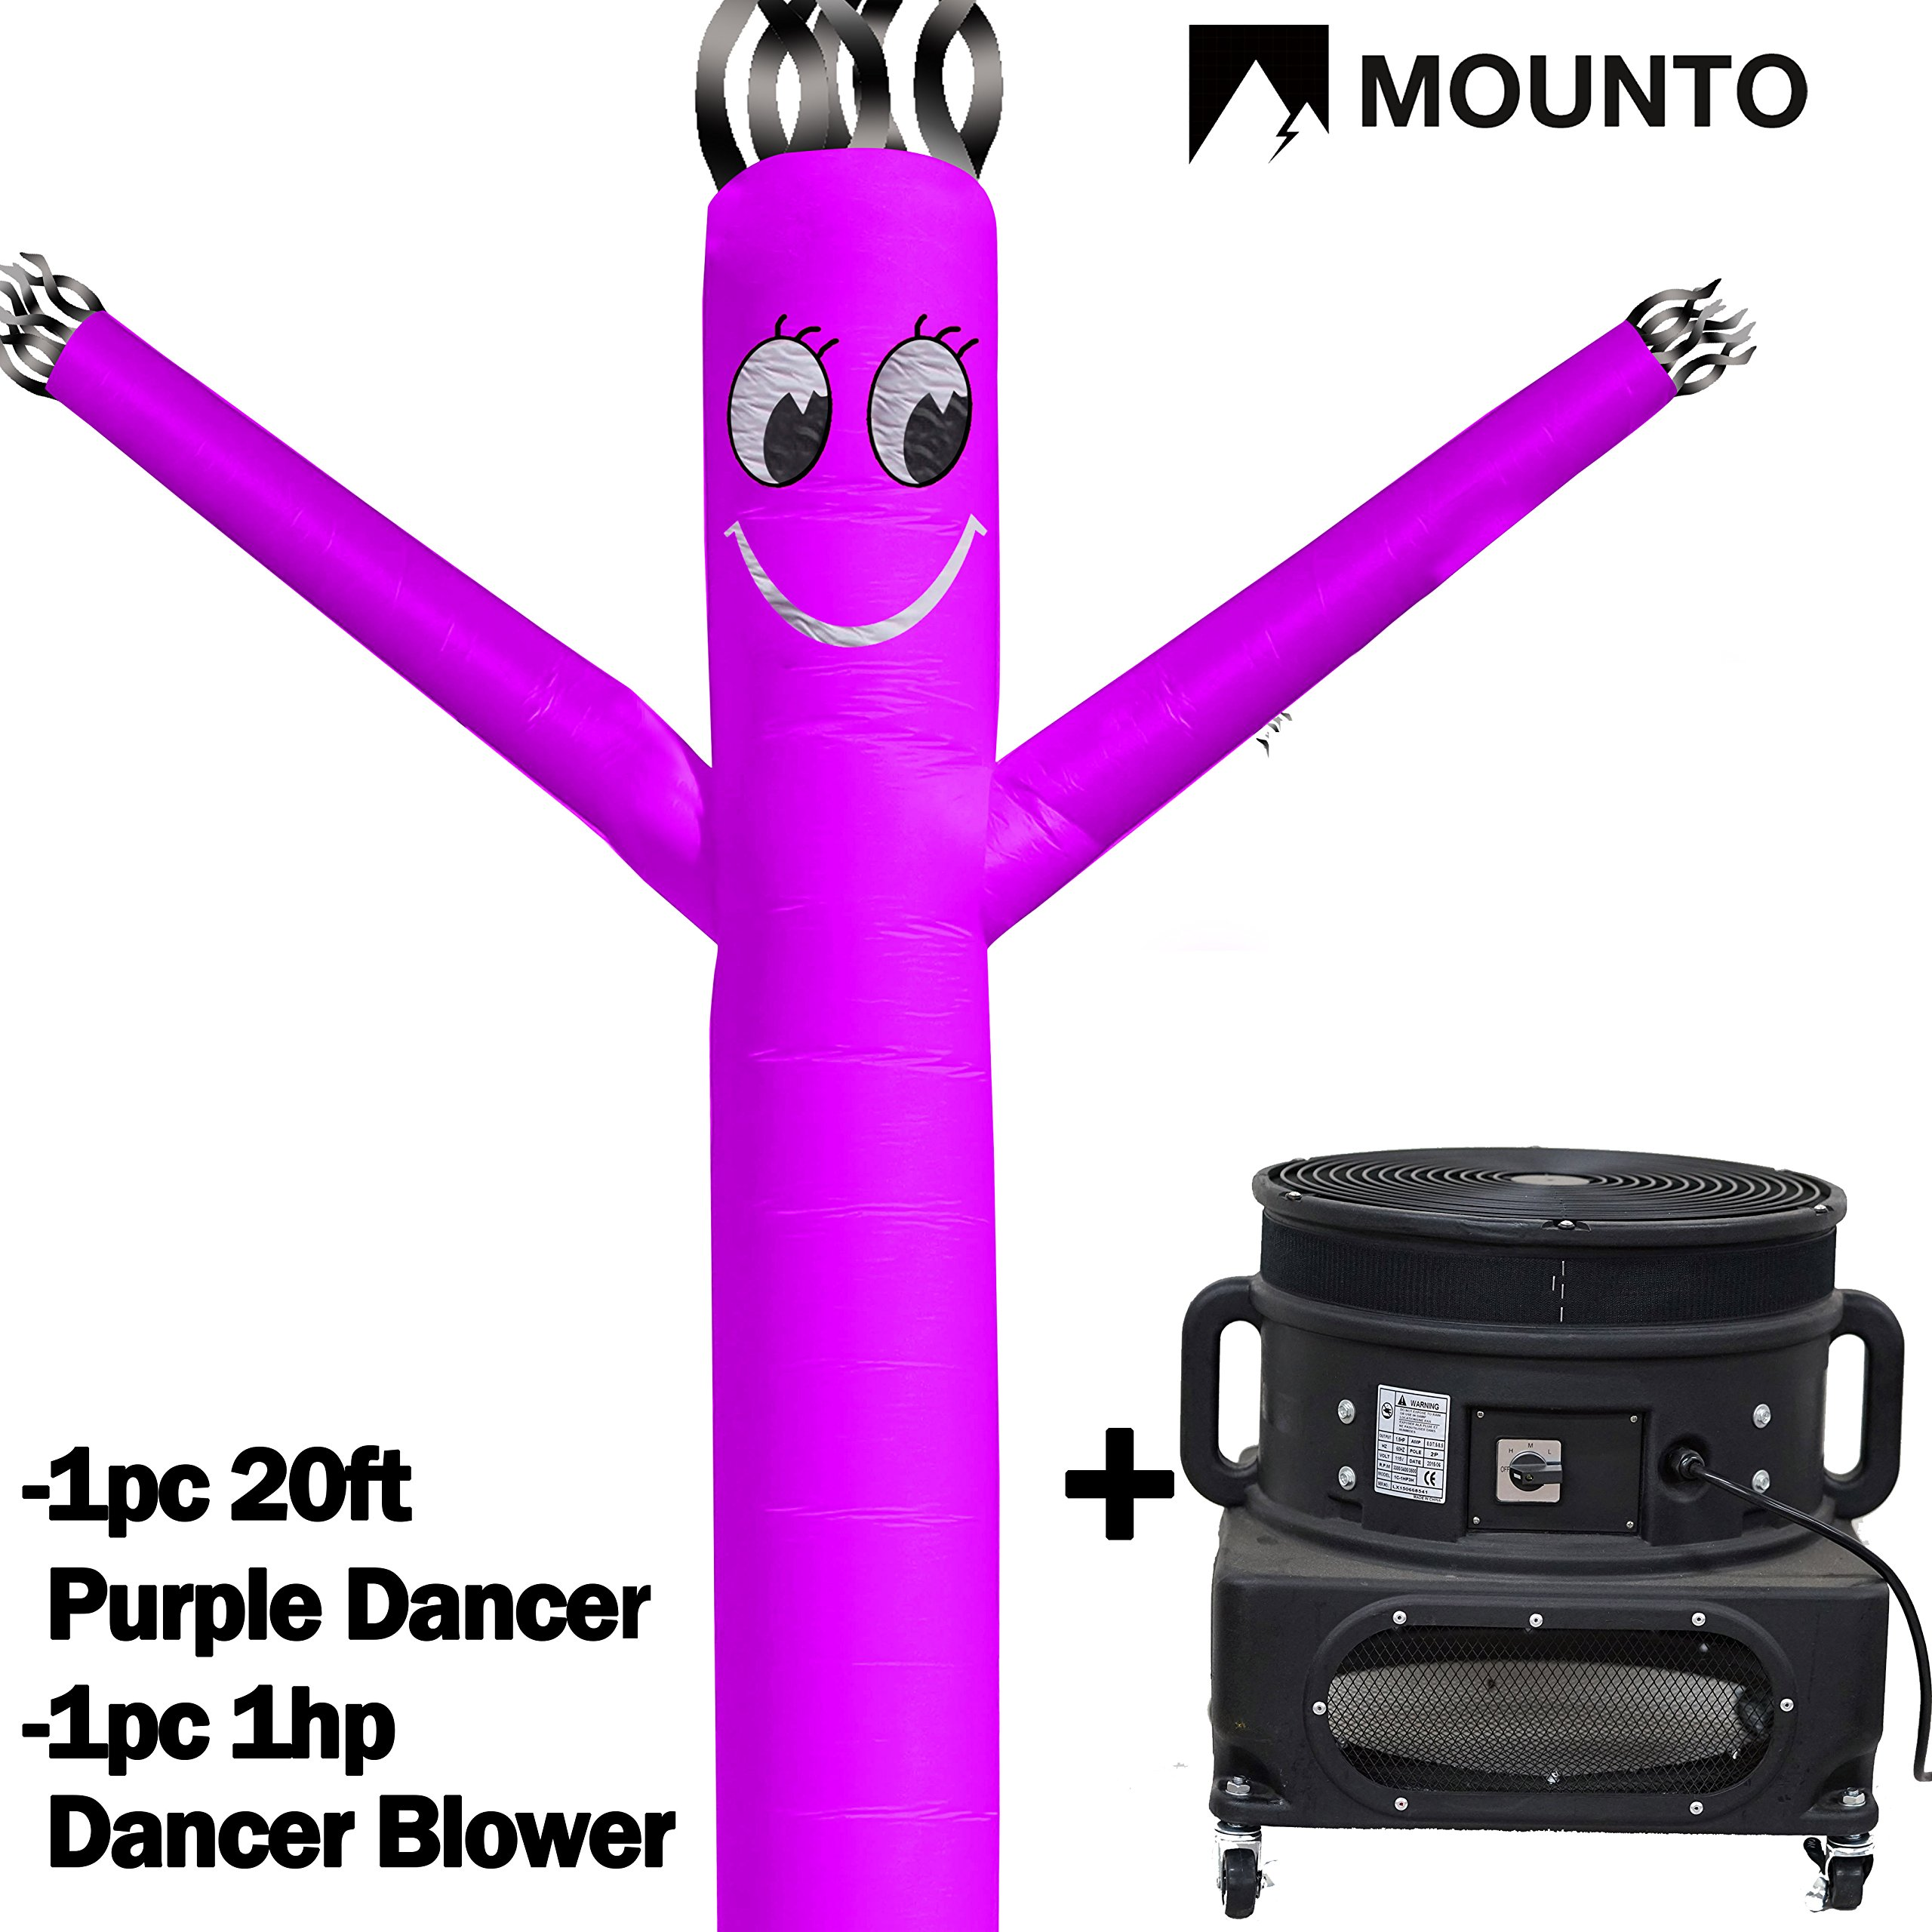 MOUNTO 20ft Air Puppet Dancer with 1HP blower Complete Set, 20-Feet 18Inch (PURPLE)